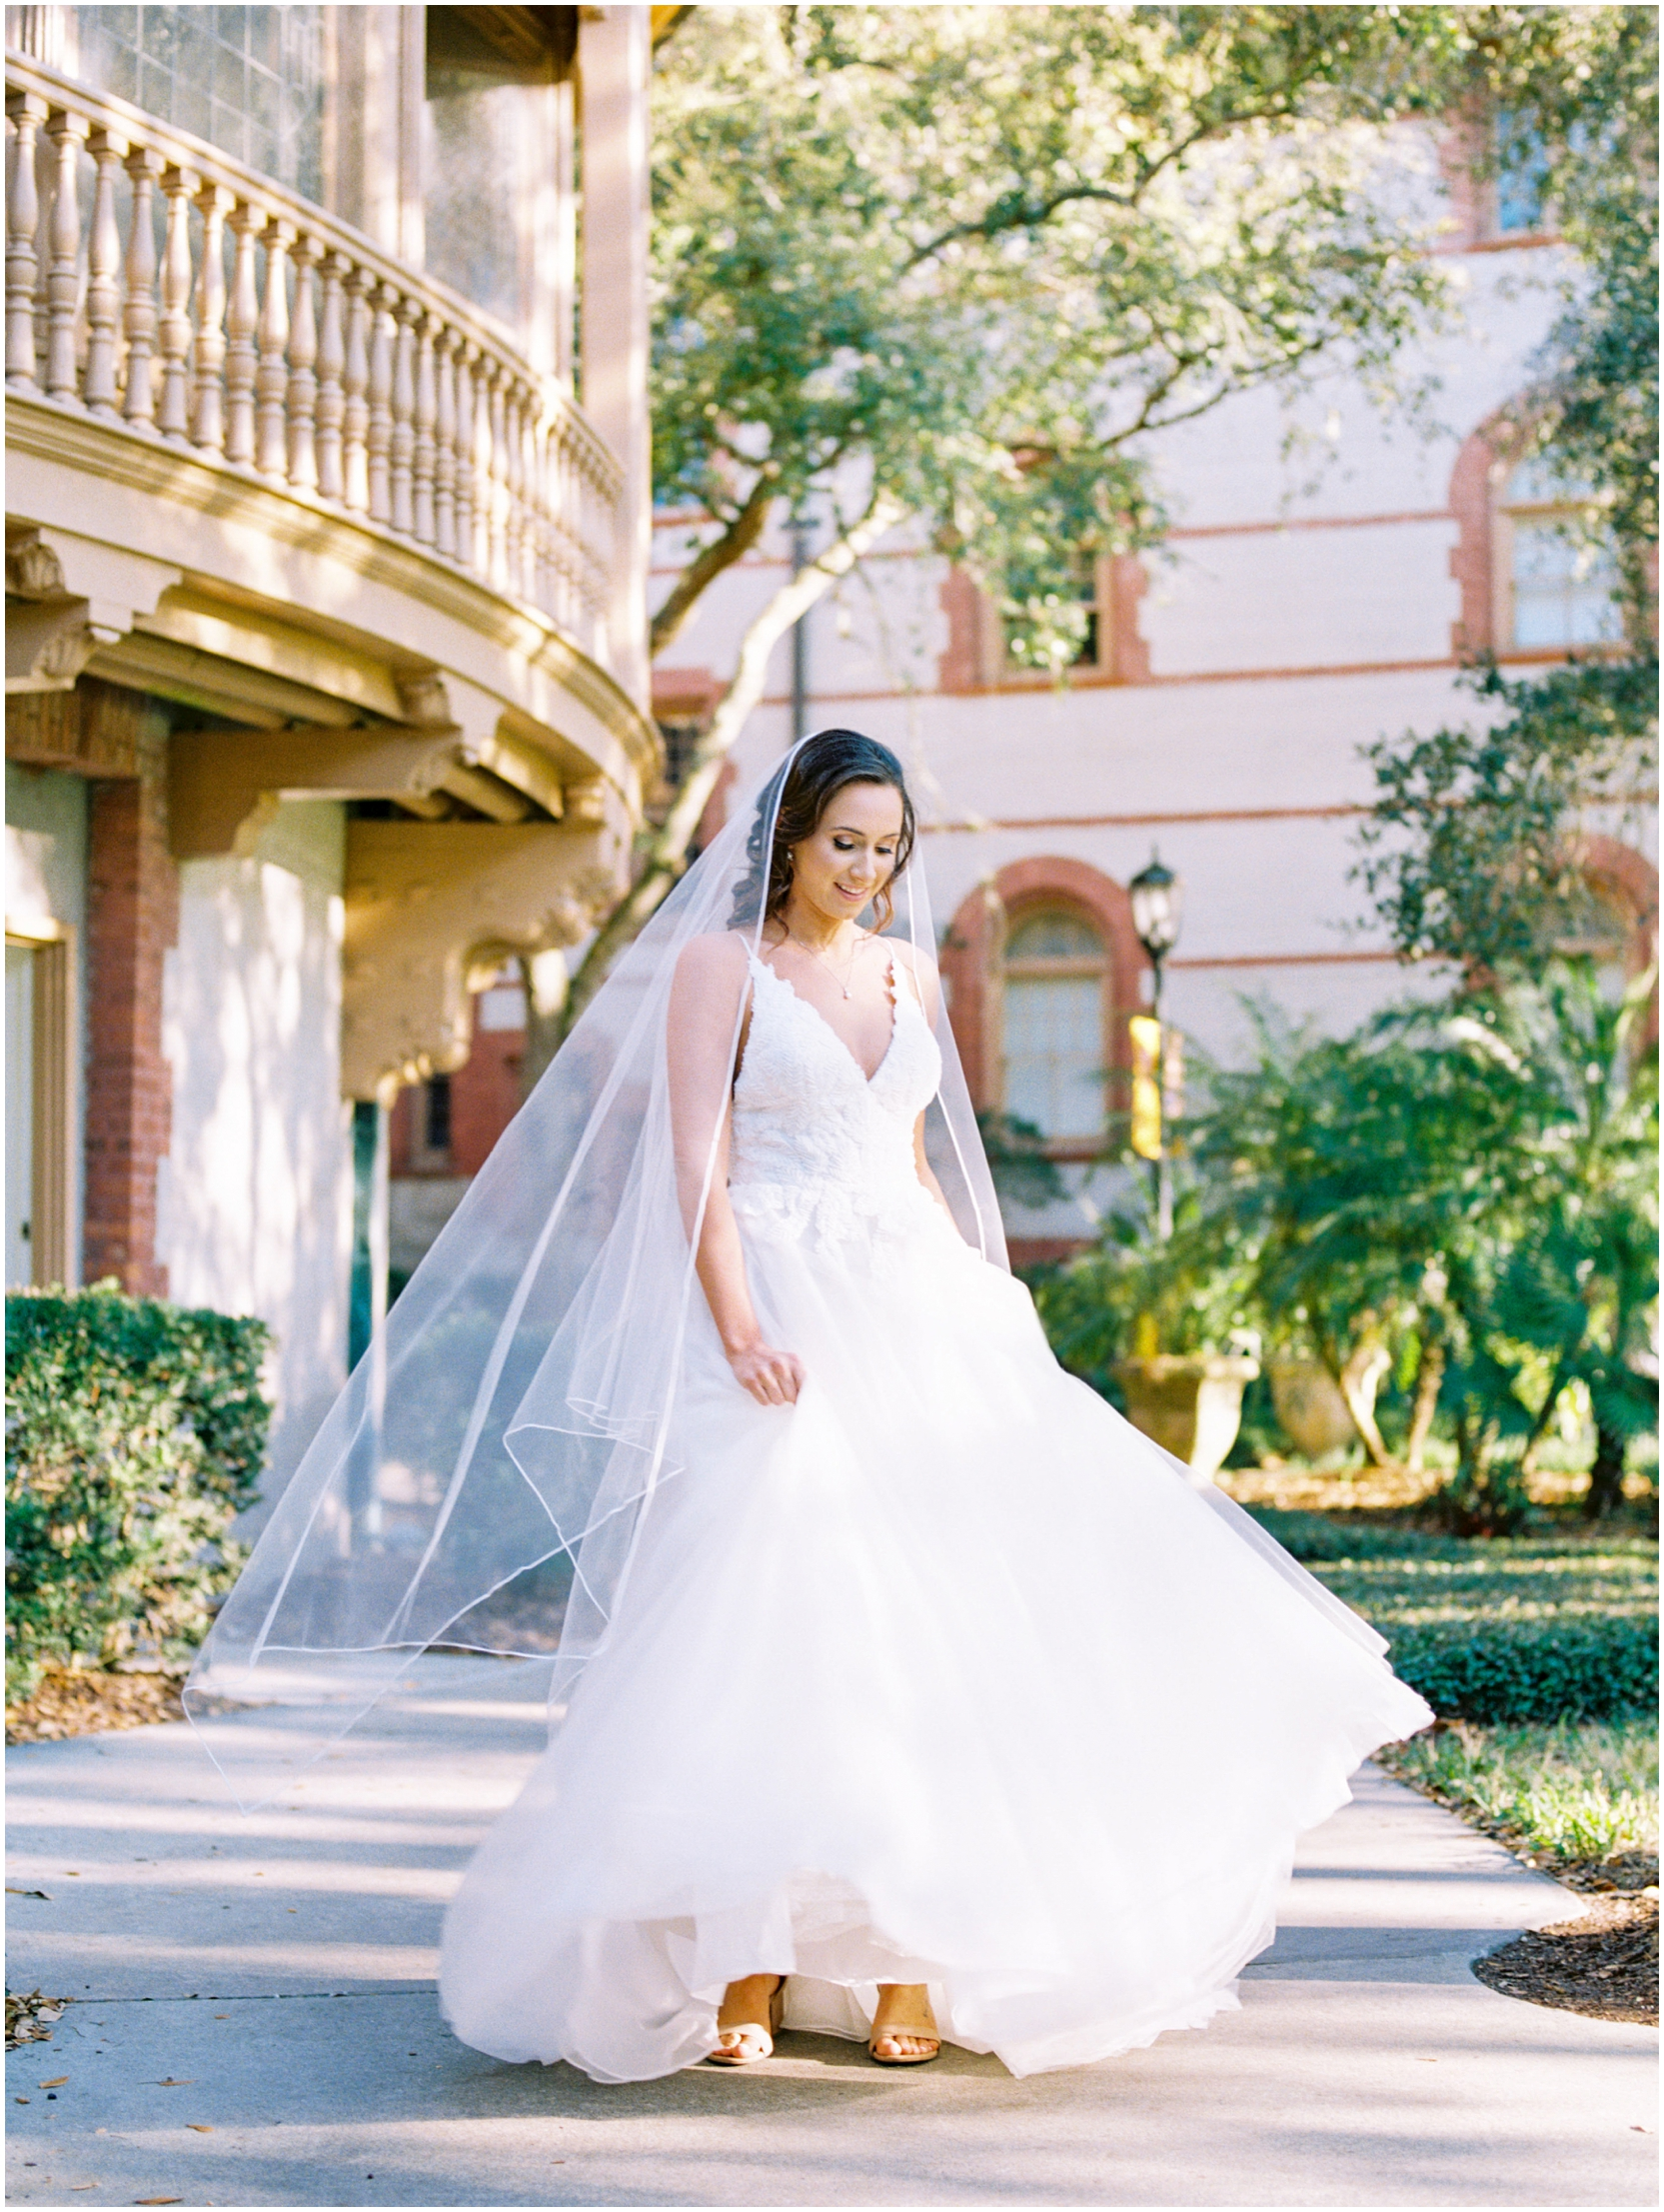 Lisa Silva Photography -Bridal Portrait Session in St. Augustine, Florida- Jacksonville and North East Florida Fine Art Film Photographer_009.jpg